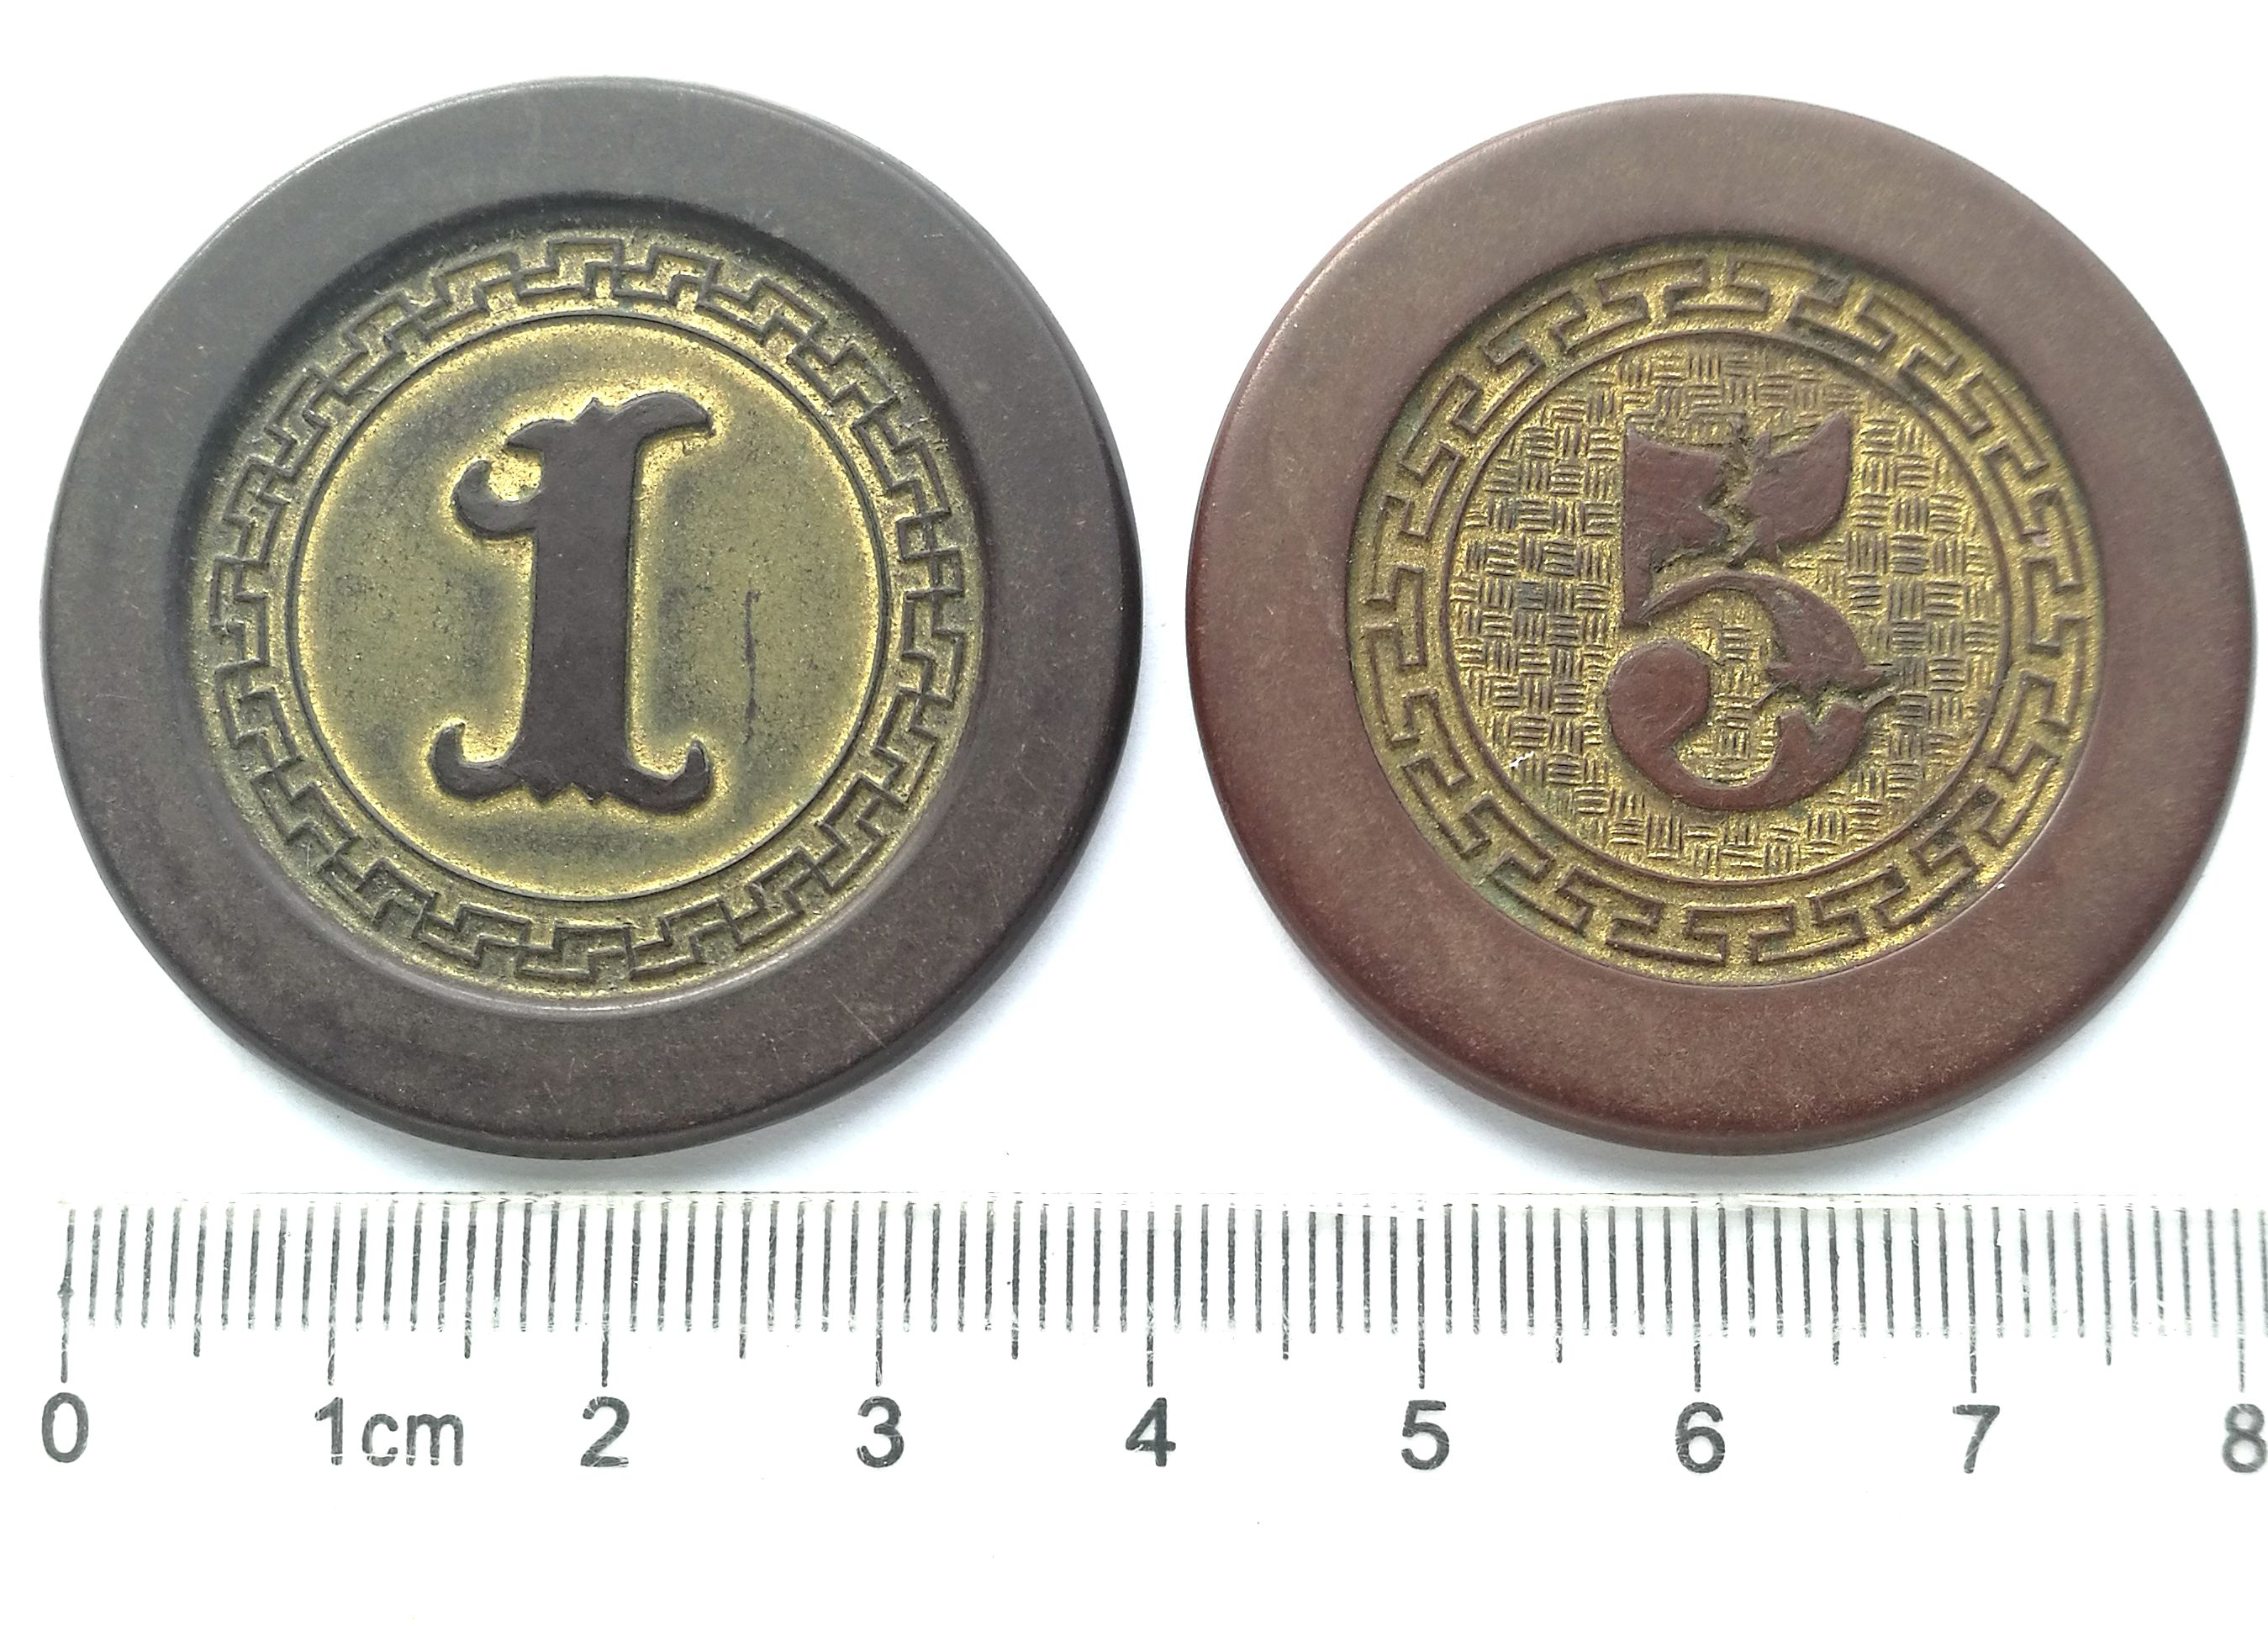 BT630, Shanghai Casino Token 1 and 5 Dollars, Two Colors, (Bakelite) 1930's